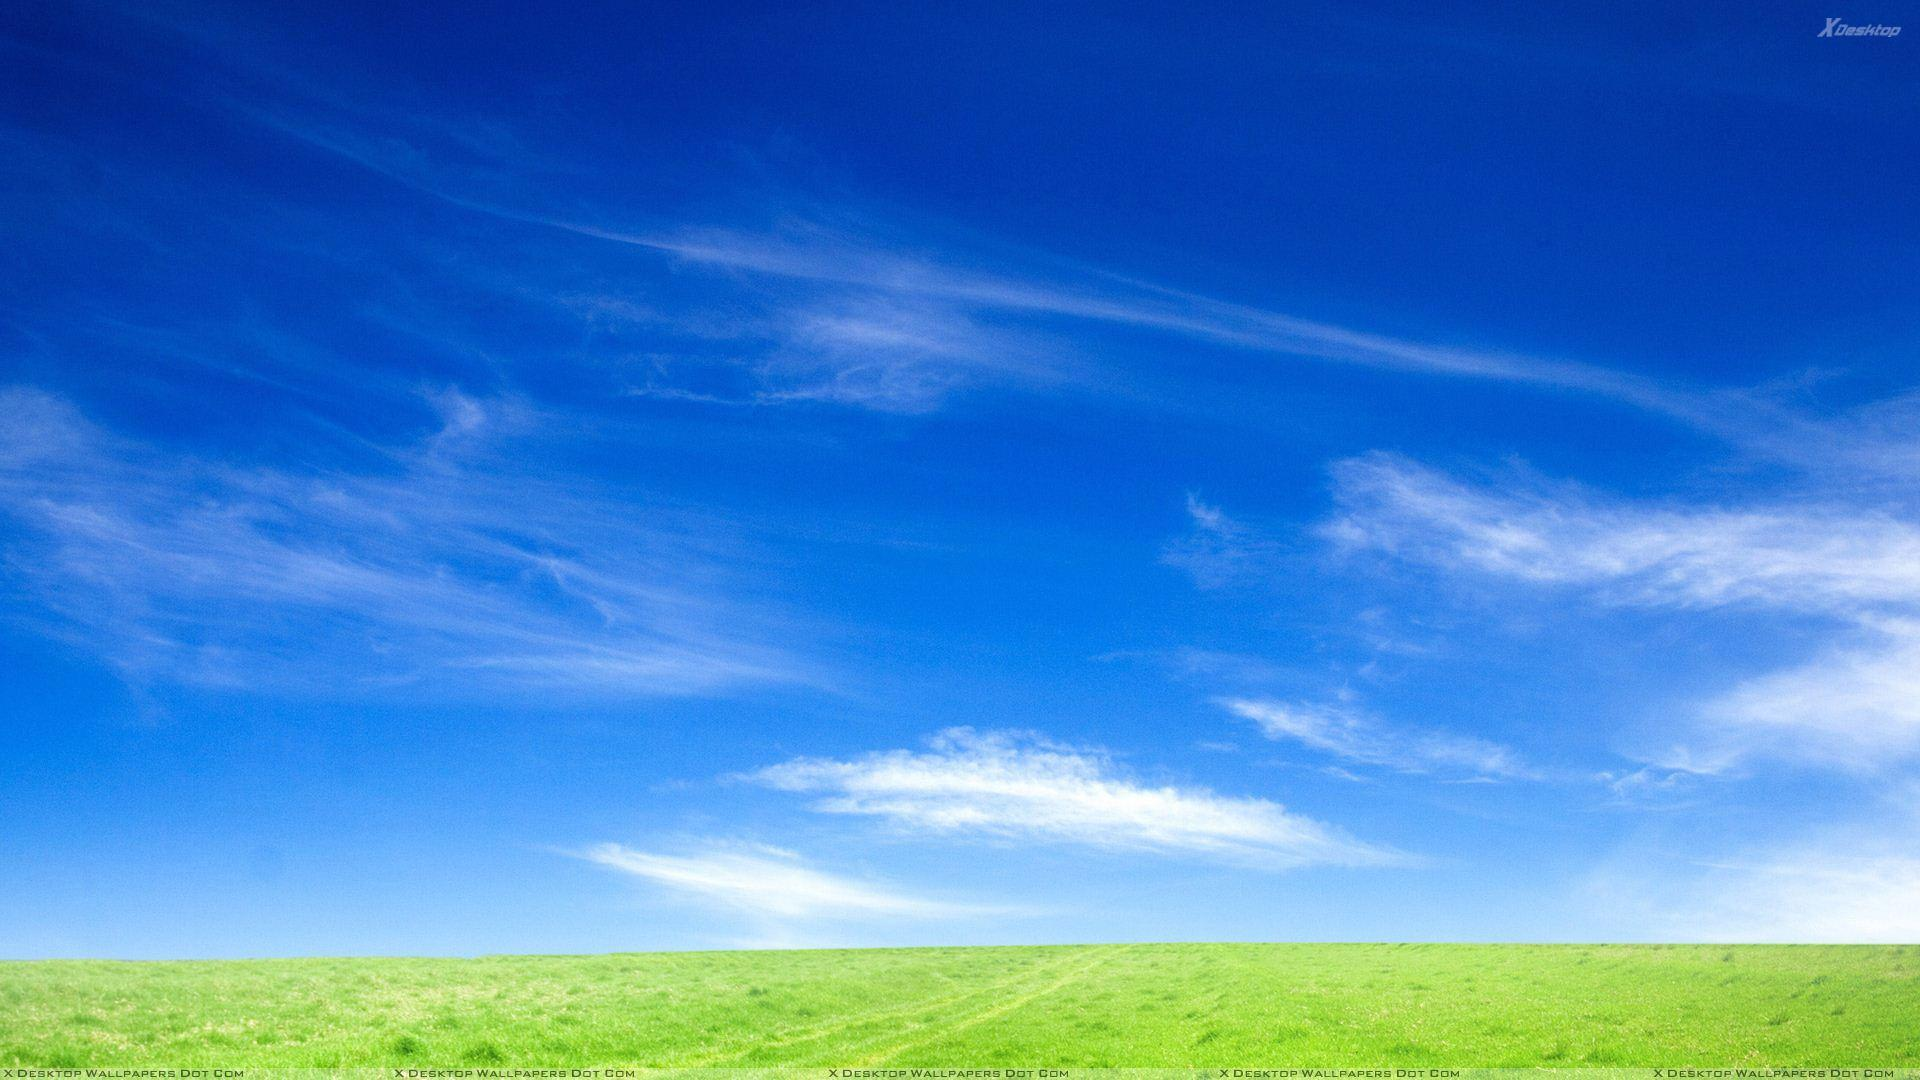 Blue Sky And Green Grass Morning Scene Wallpapers